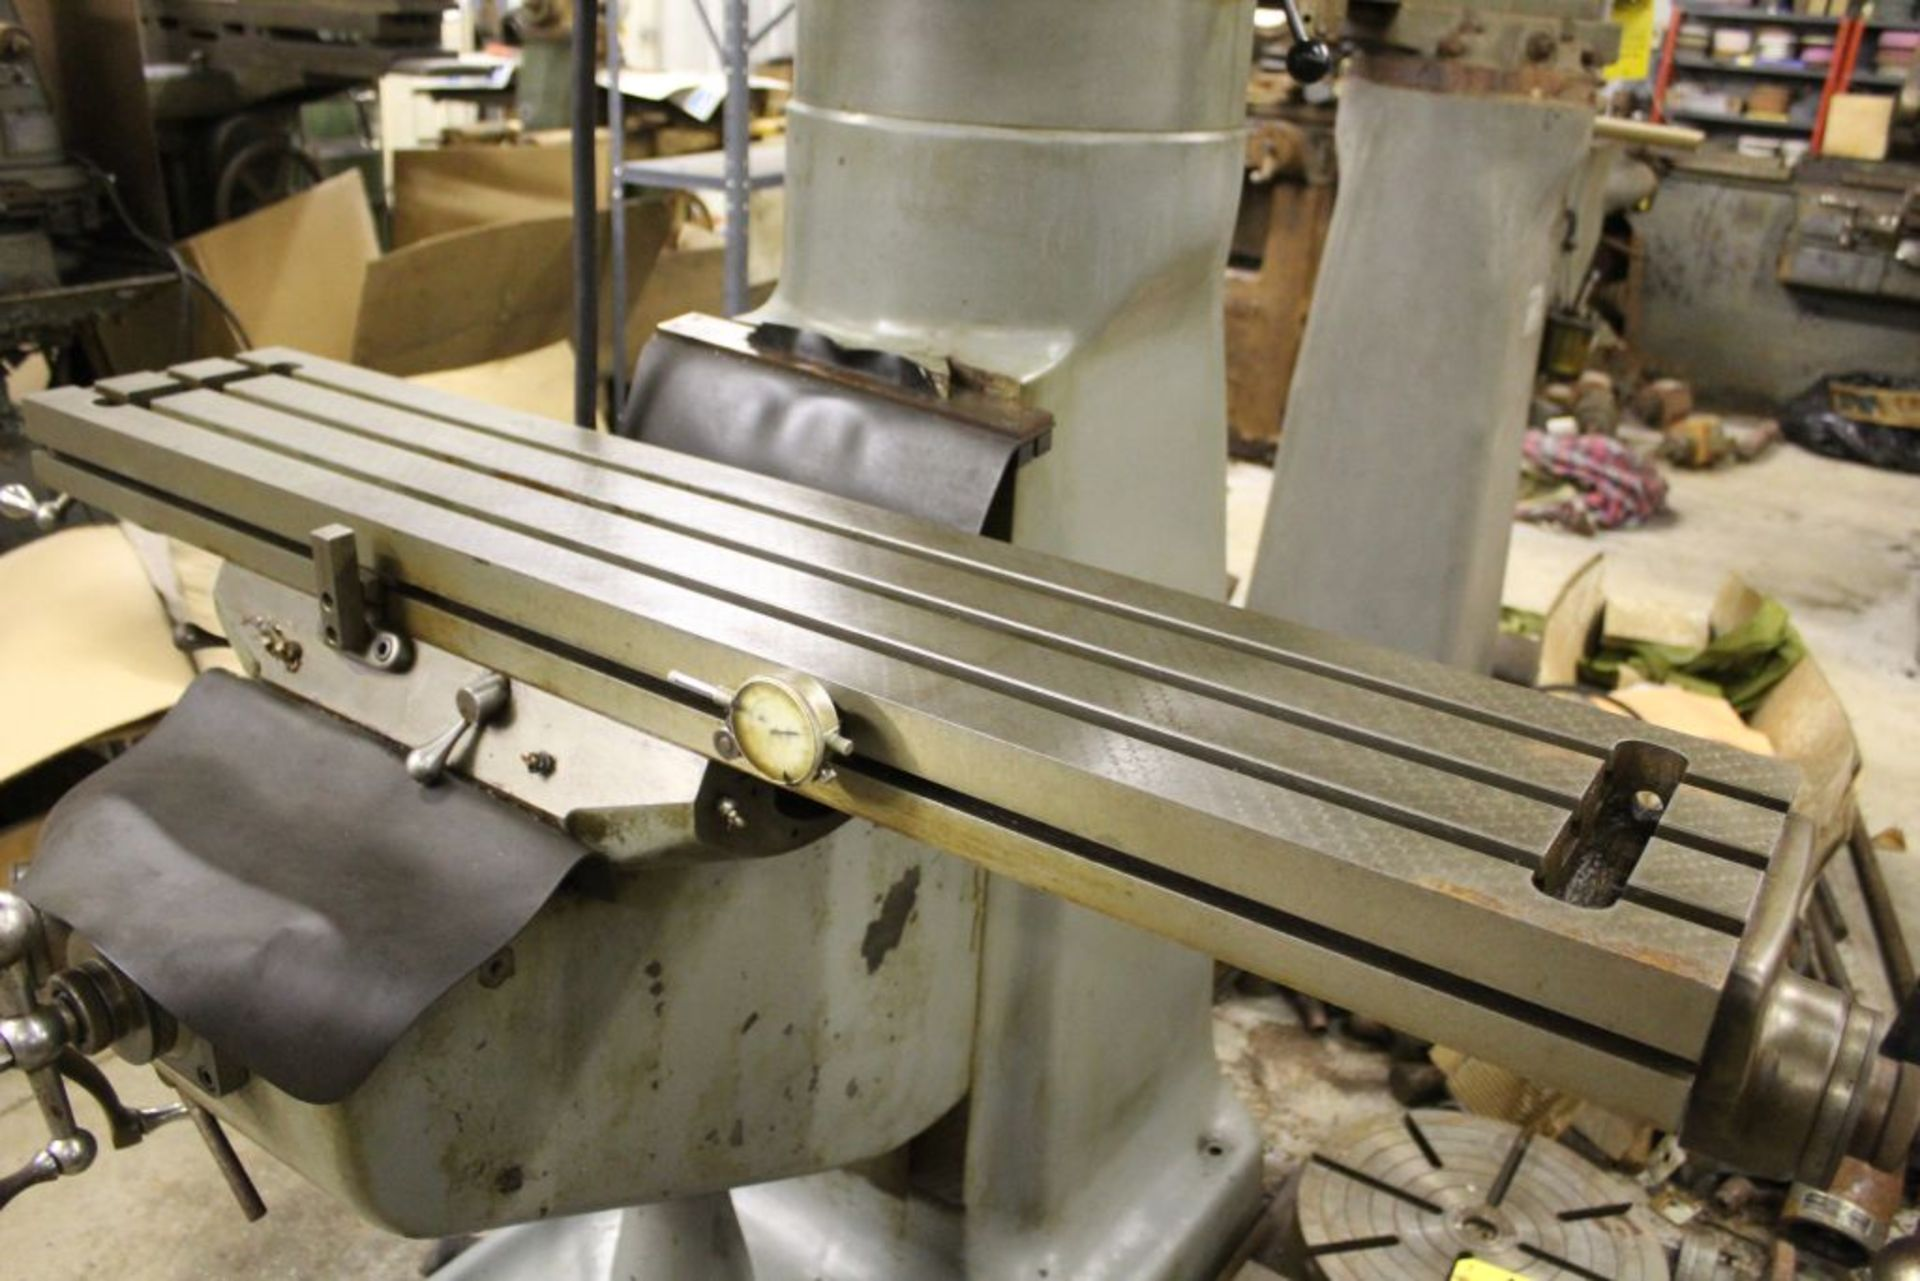 """Bridgeport mill, model 12-BR, sn 83978, 9"""" x 48"""" bed, manual (not down power), shaping attachment. - Image 10 of 15"""